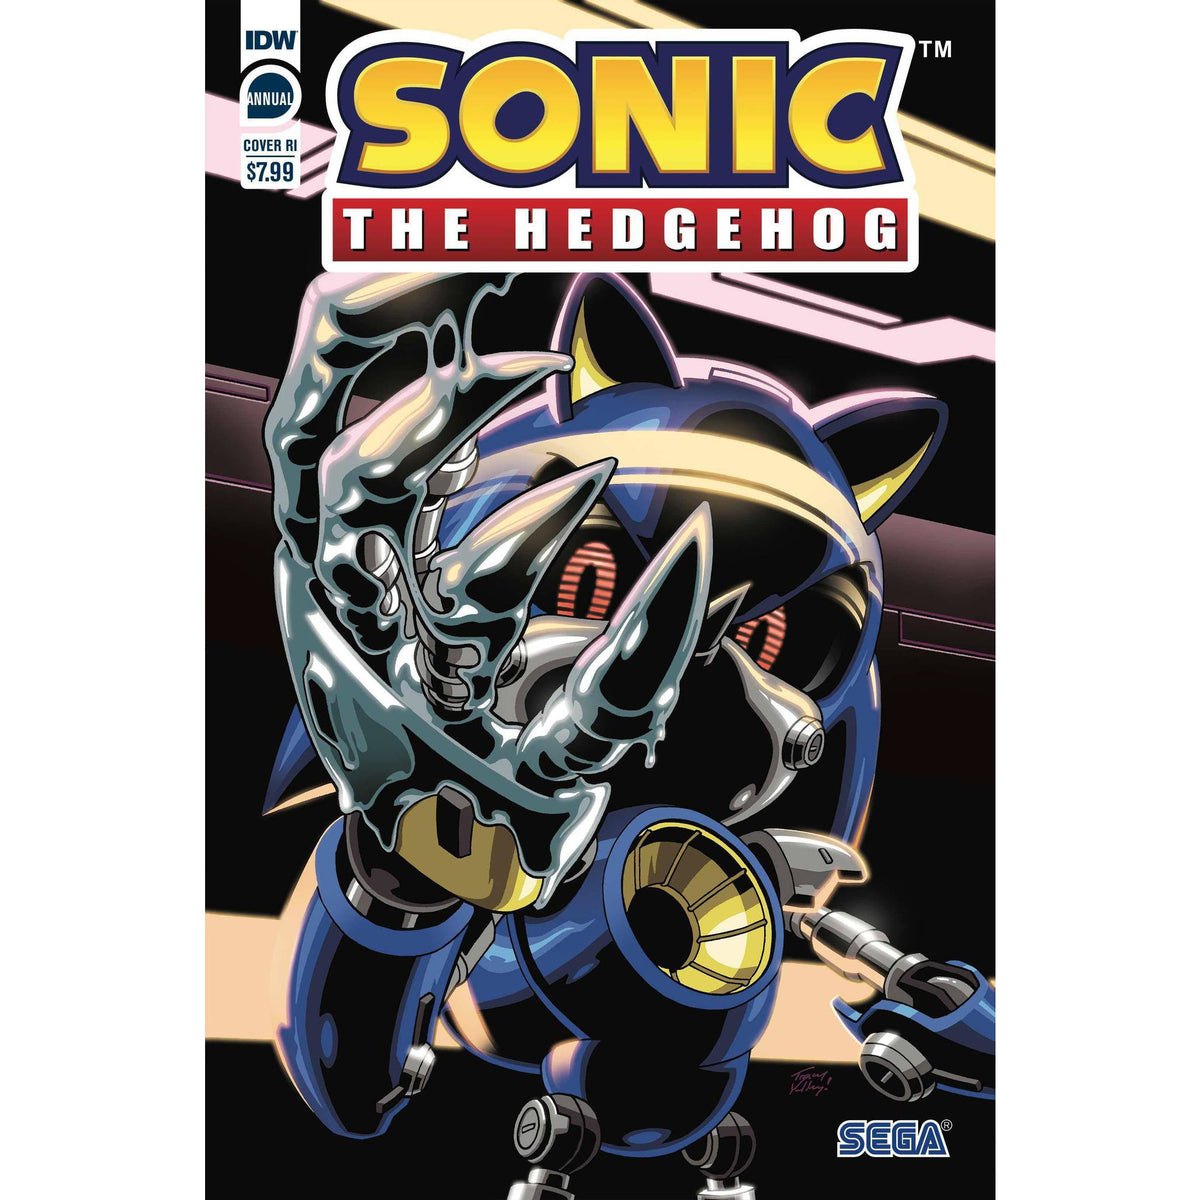 SONIC THE HEDGEHOG ANNUAL 2020 - 1:10 YARDLEY COVER C